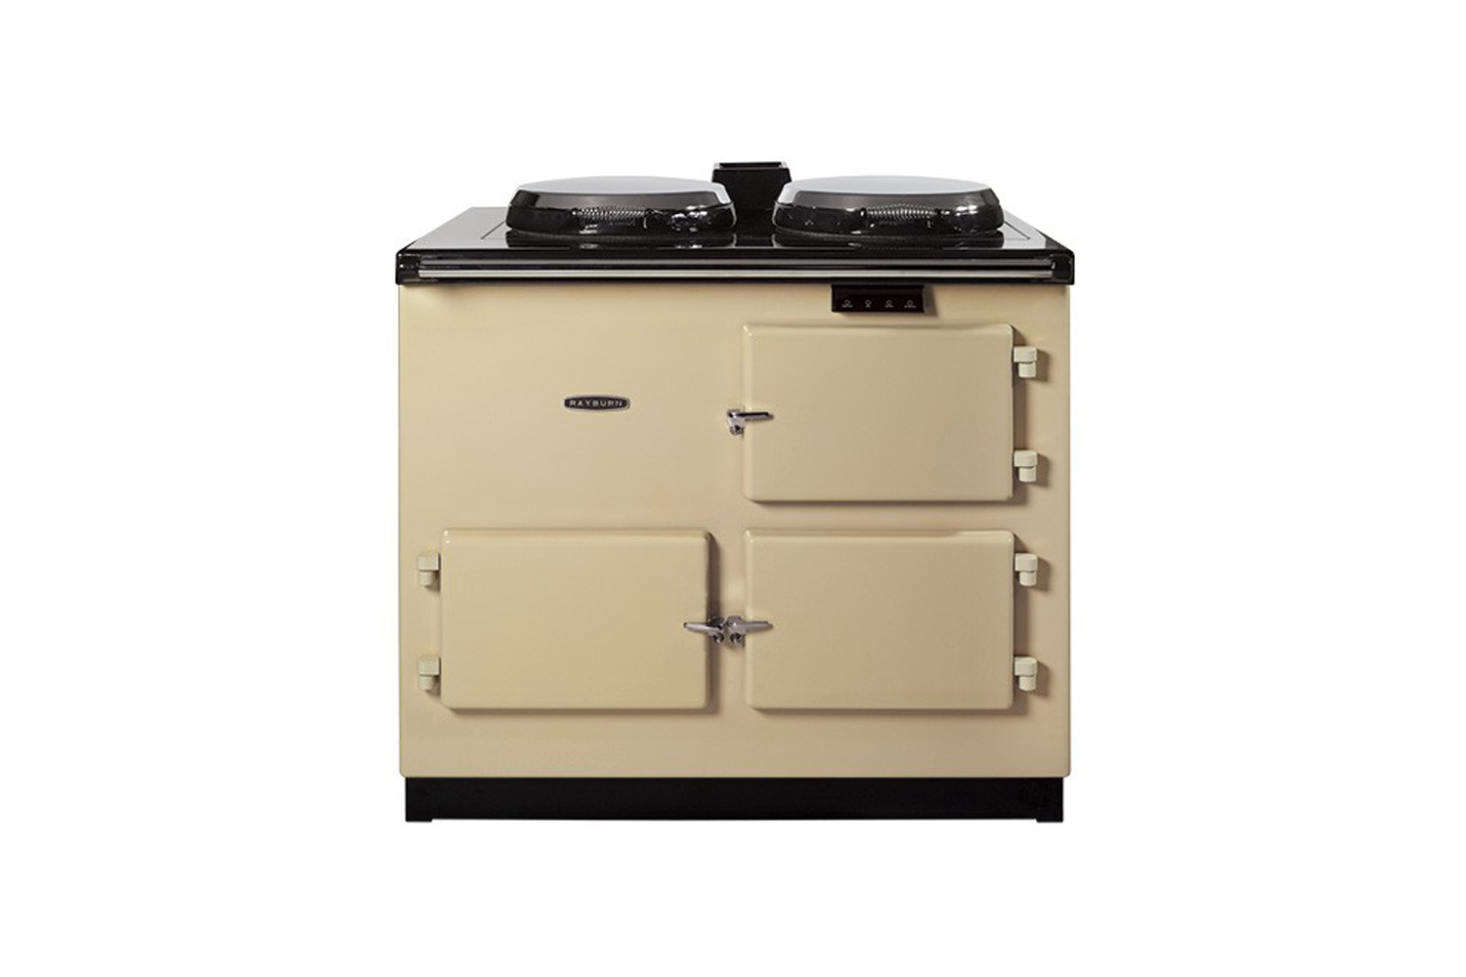 Rayburn Cookers are made in the UK of 70 percent recycled material and come in different models including an oil-fired cooker, central heating, wood-burning, and gas cooker. They're available through Walter Dix & Co.